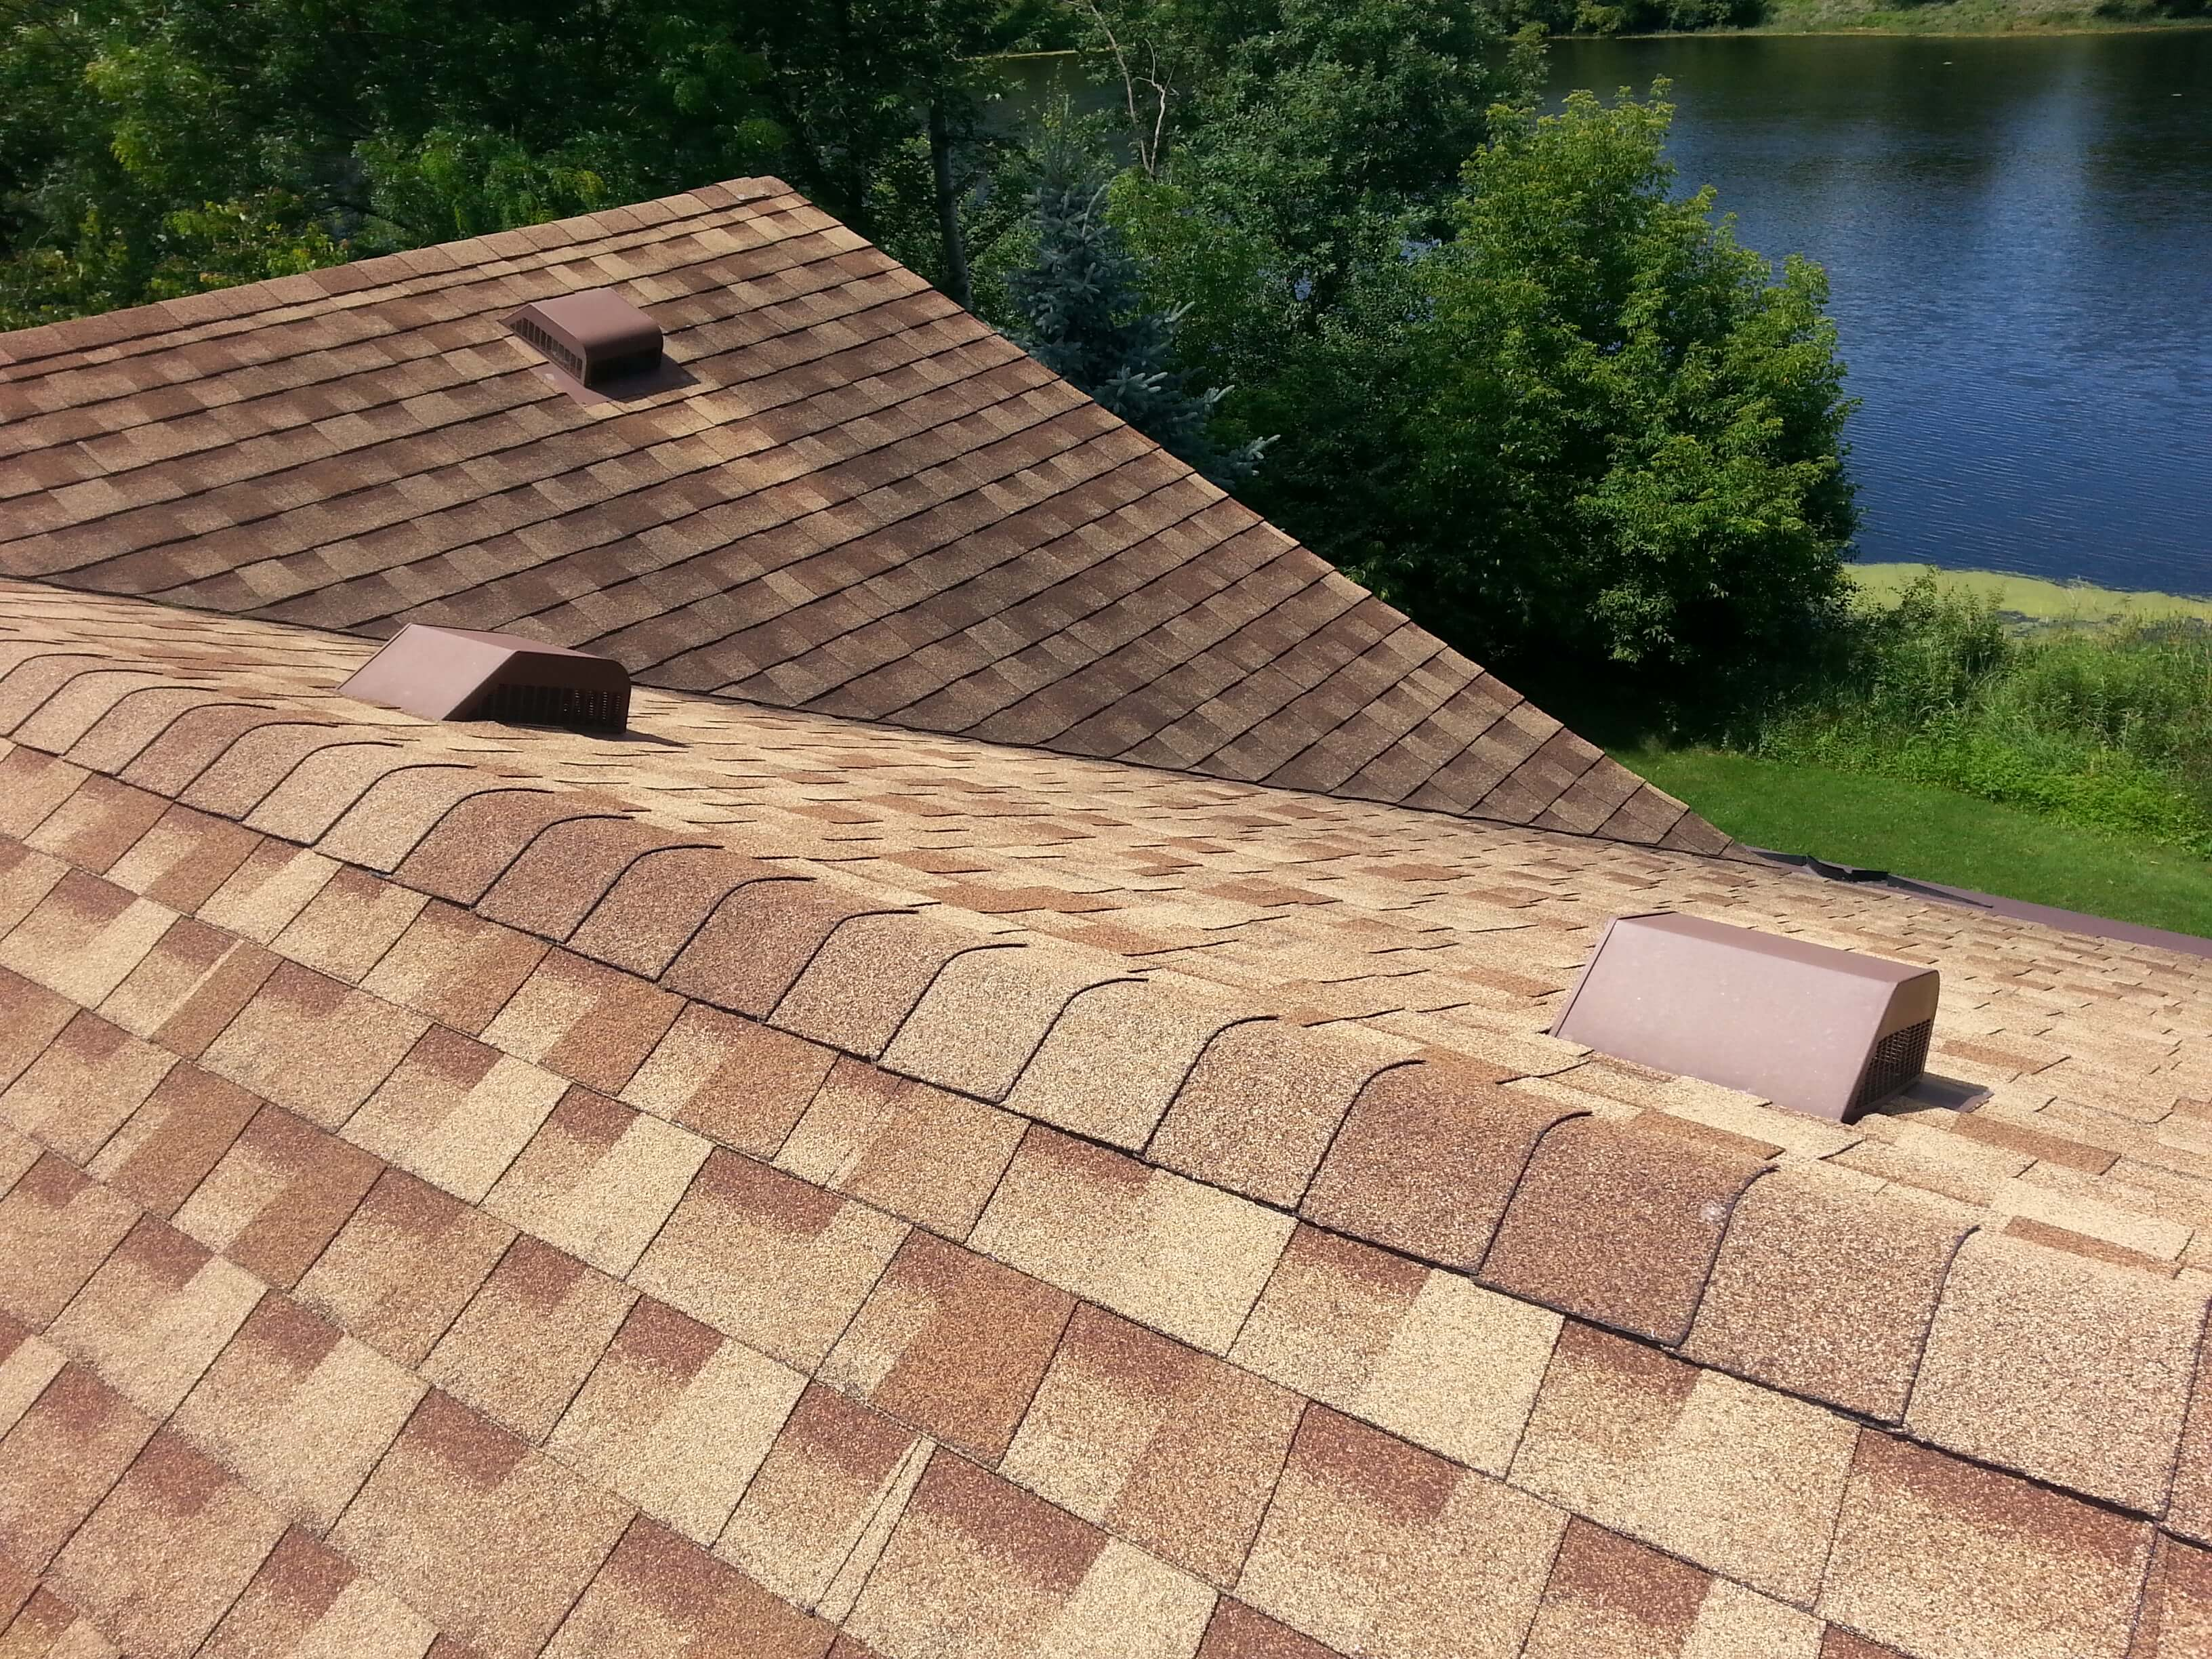 Roof Replacement Part 1 Should Contractors Use Gaf Owens Corning Or Iko